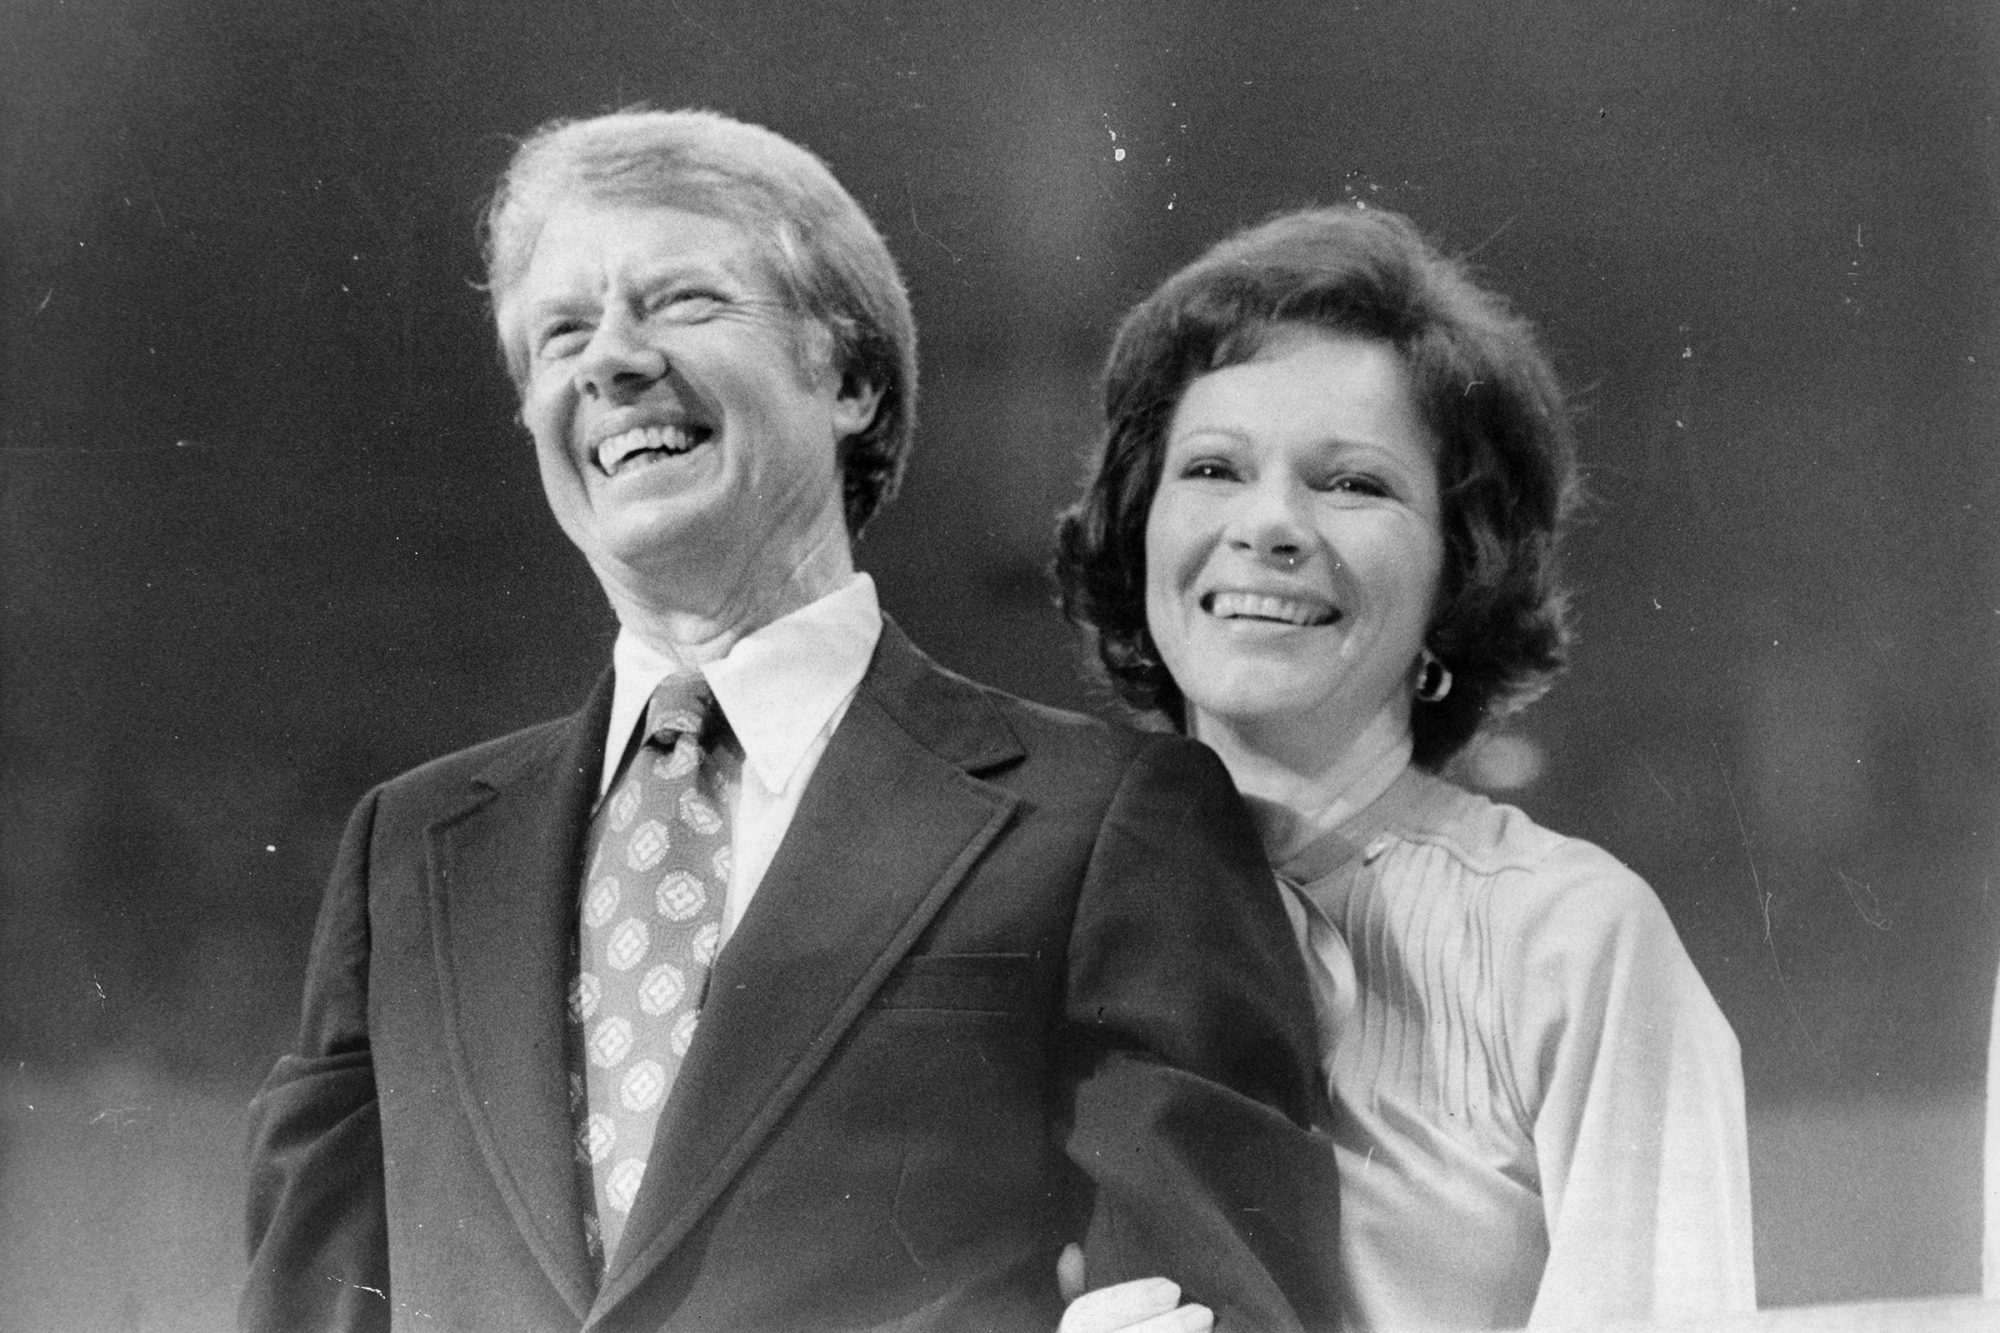 Jimmy and Rosalynn Carter Marriage Photos and TImeline | PEOPLE.com